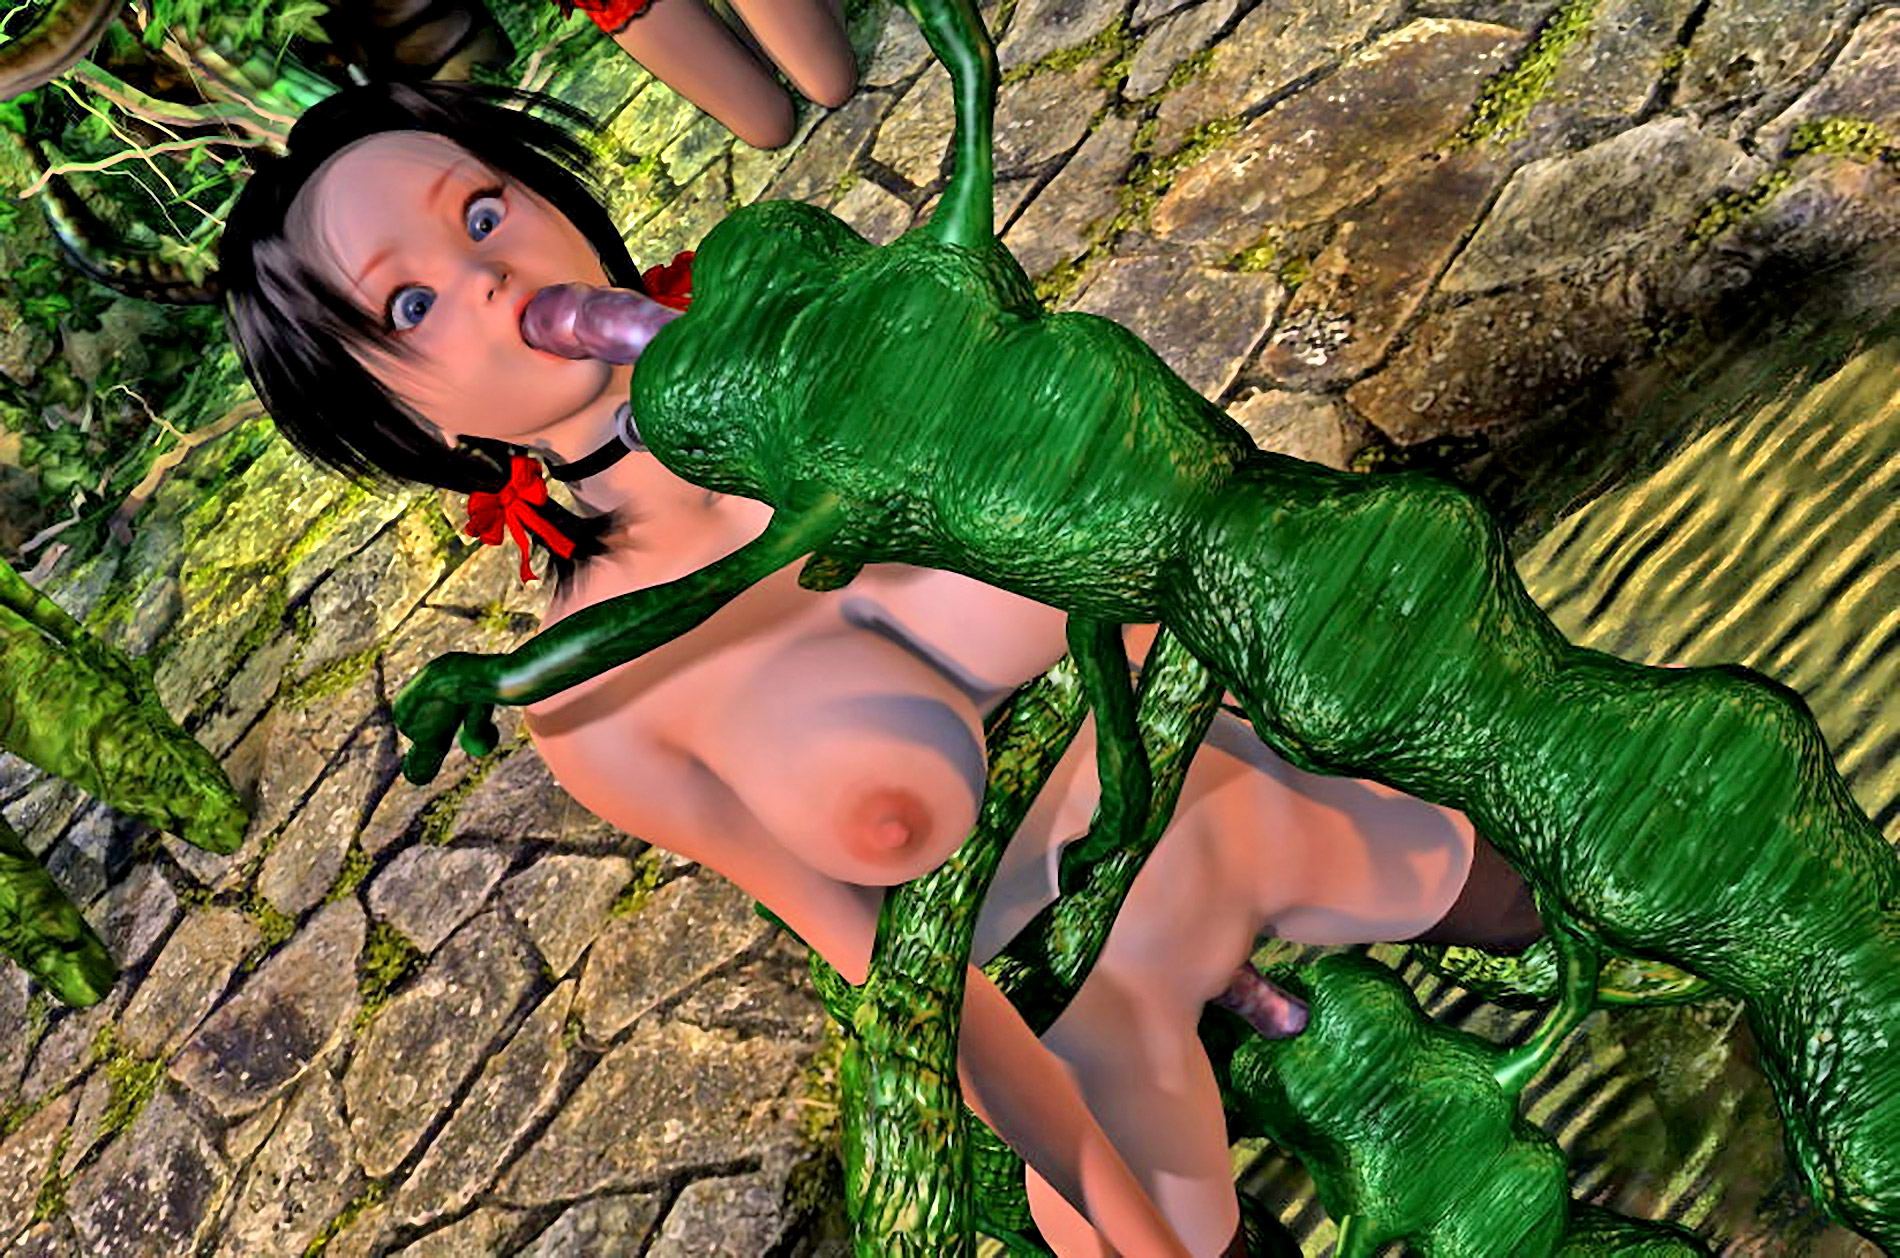 Video porno hentai tomb raider alien sex photos